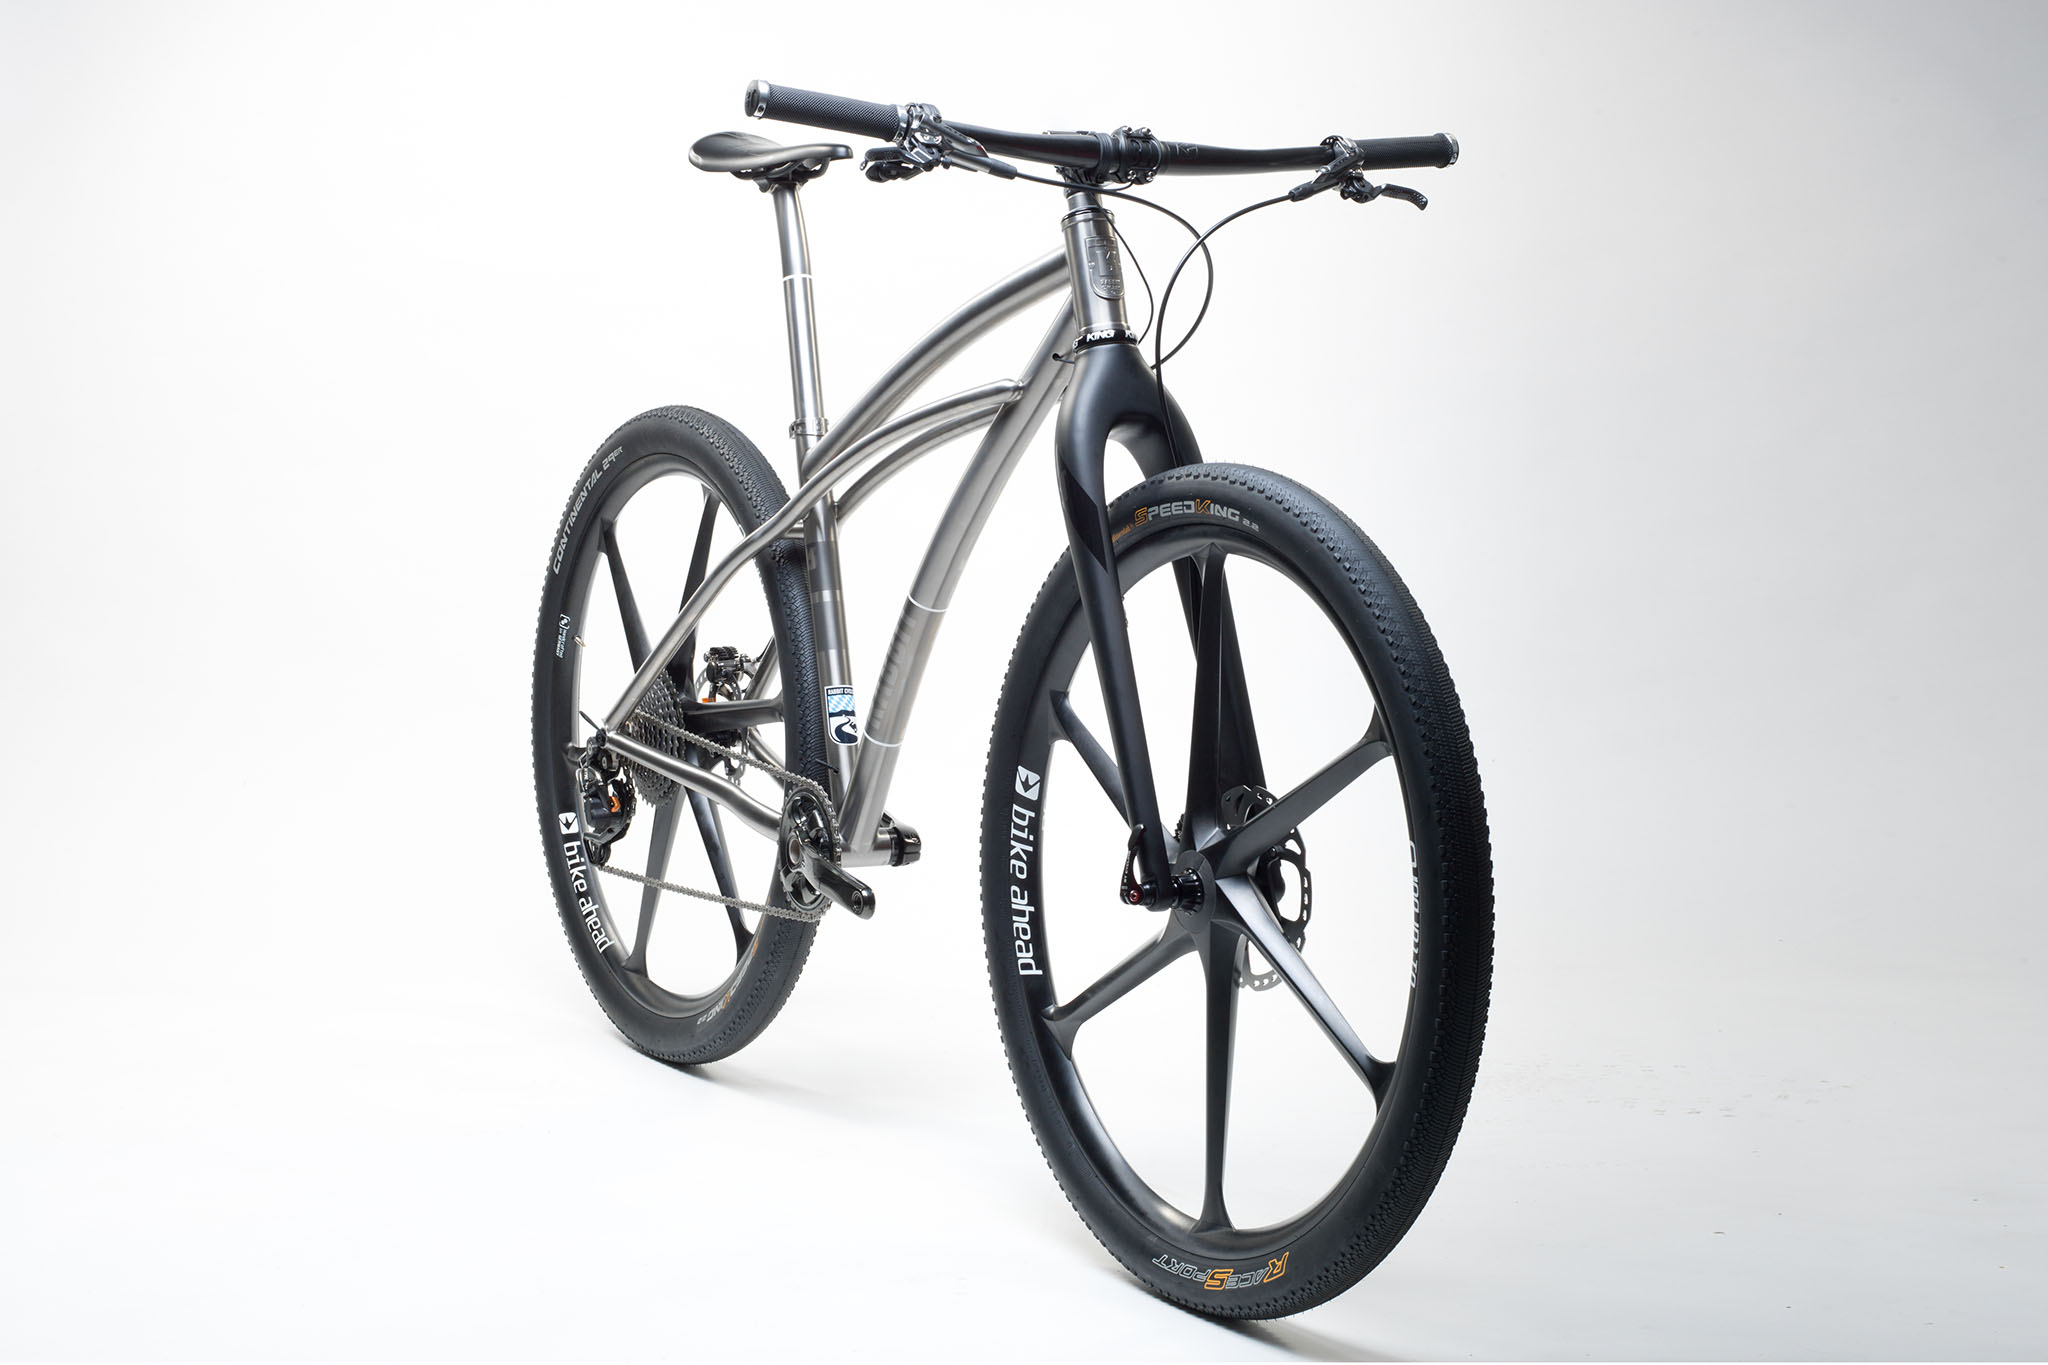 titan_mtb_29_er_cruiser_102_from_rabbit_titan_cycles_bavaria